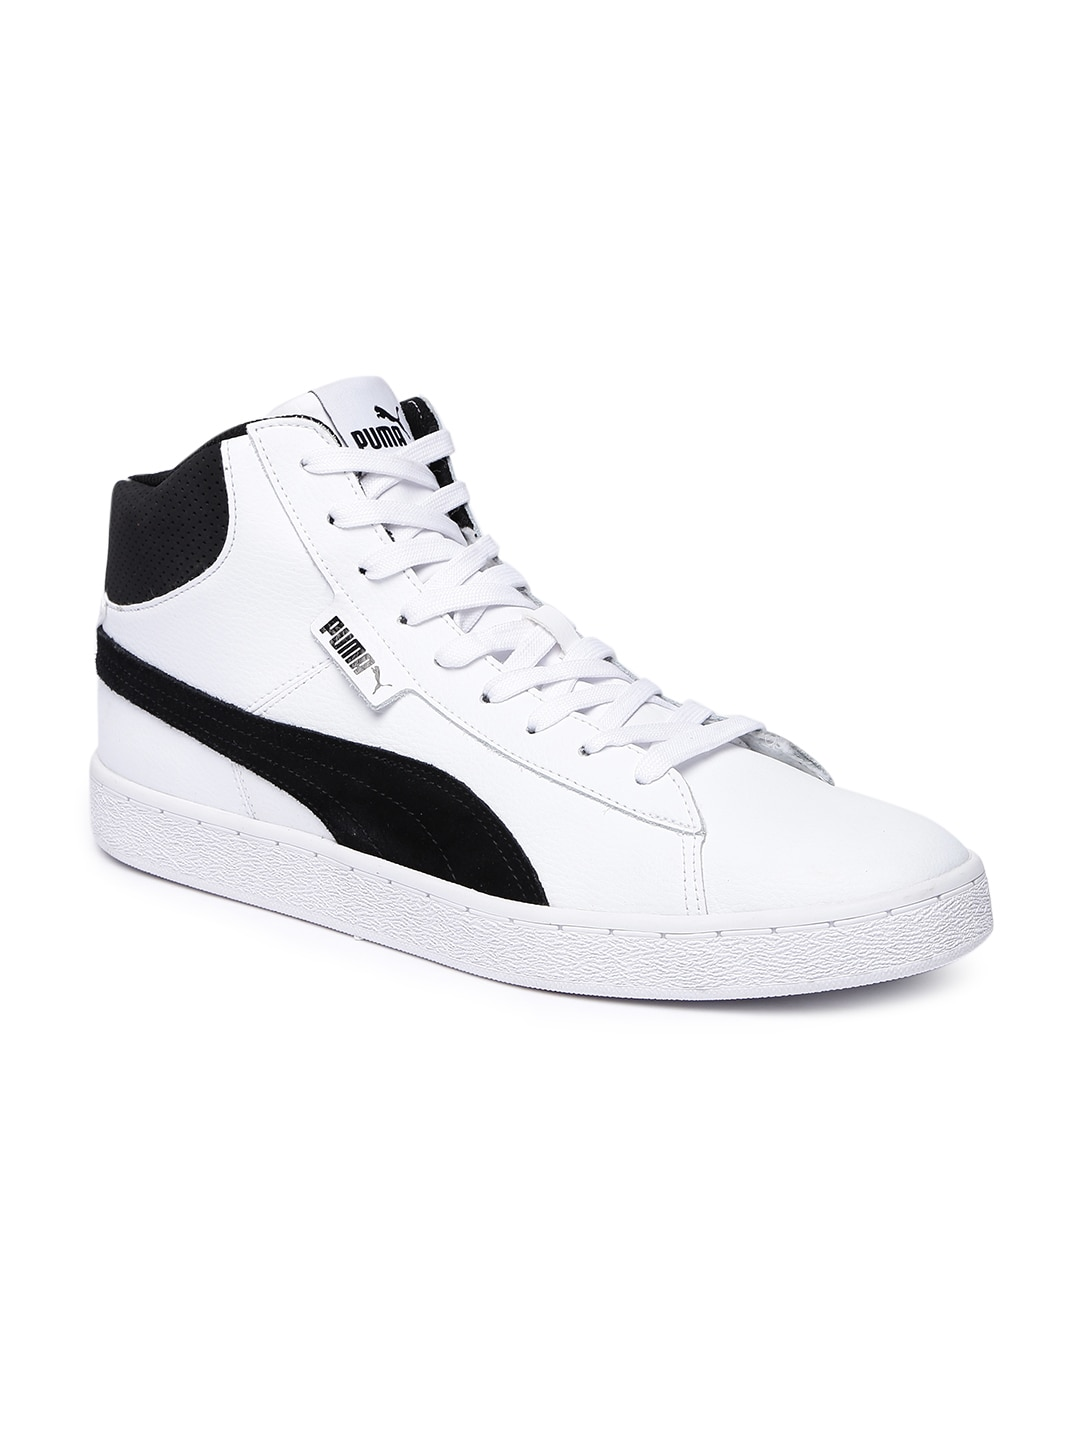 6377e8b04e5 Puma Casual Footwear - Buy Puma Casual Footwear Online in India